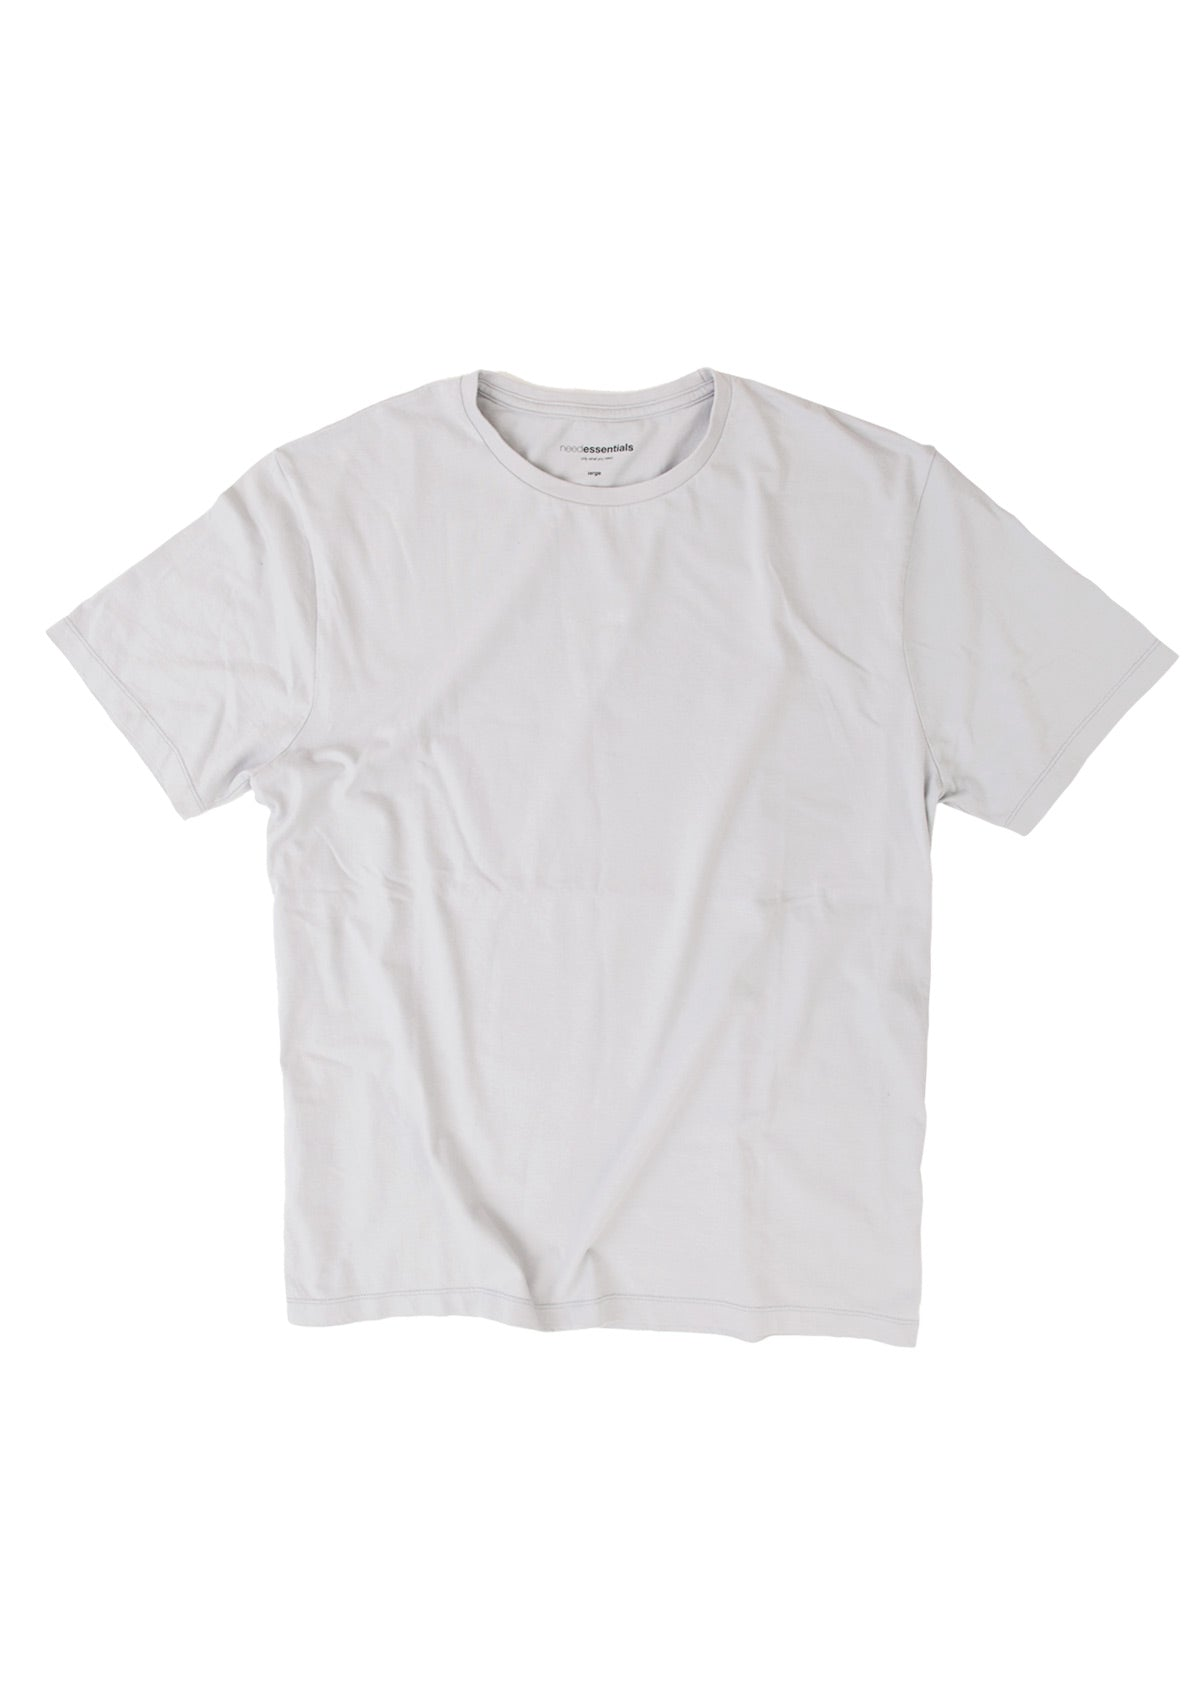 needessentials organic cotton plain t-shirt white